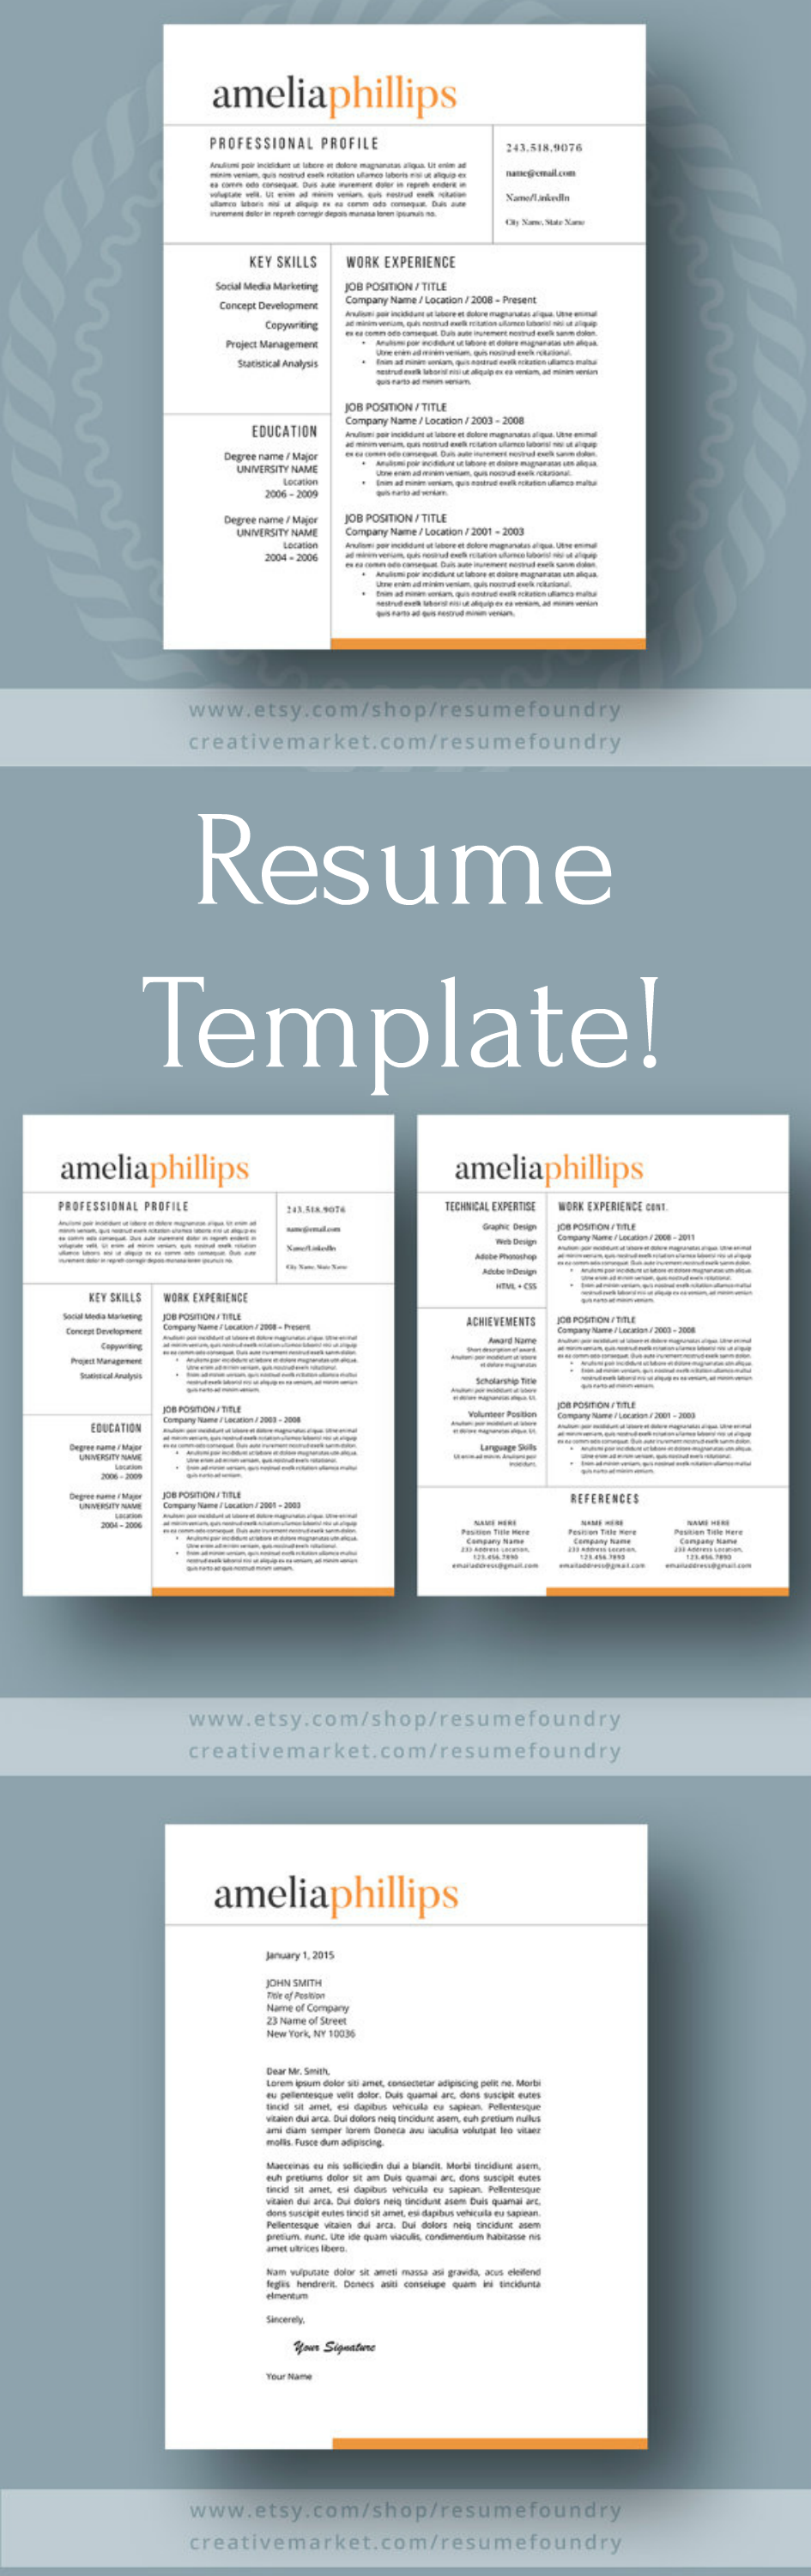 Complete And Stylish Resume Template To Help You Get That Perfect